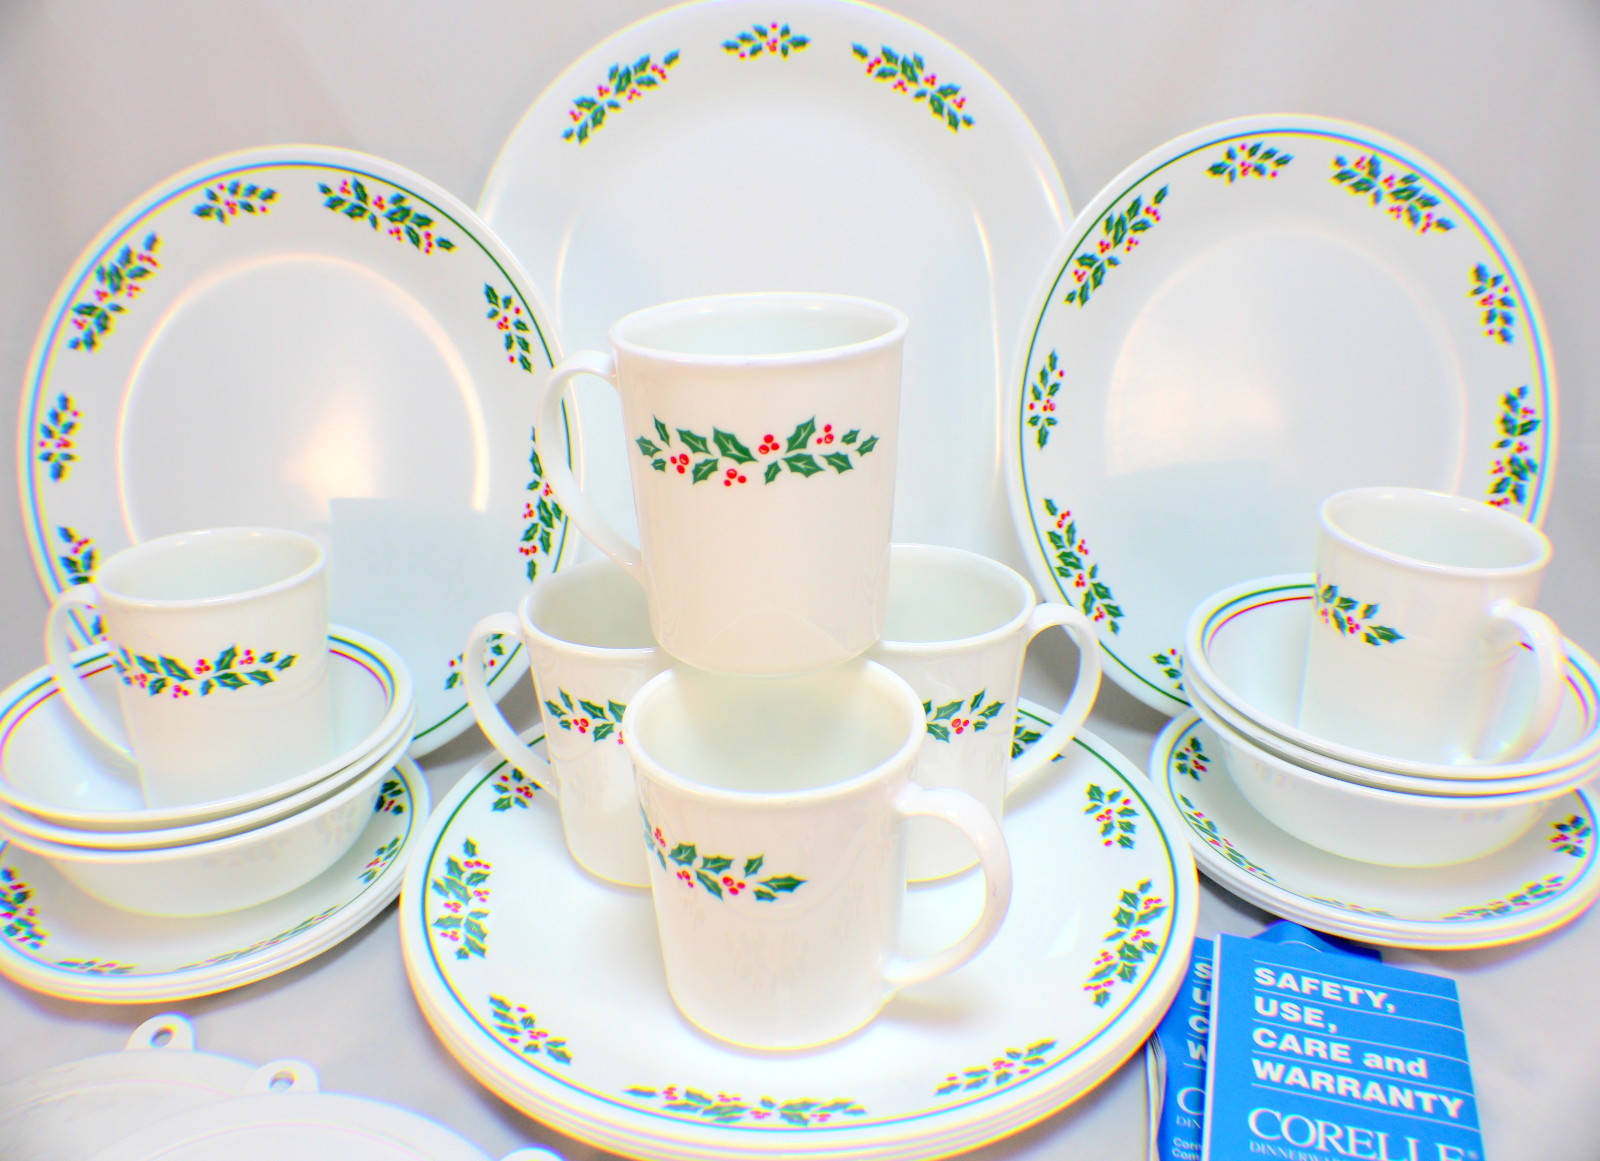 1984 Corelle Holiday Set 31 Piece Holly Days 6 Place